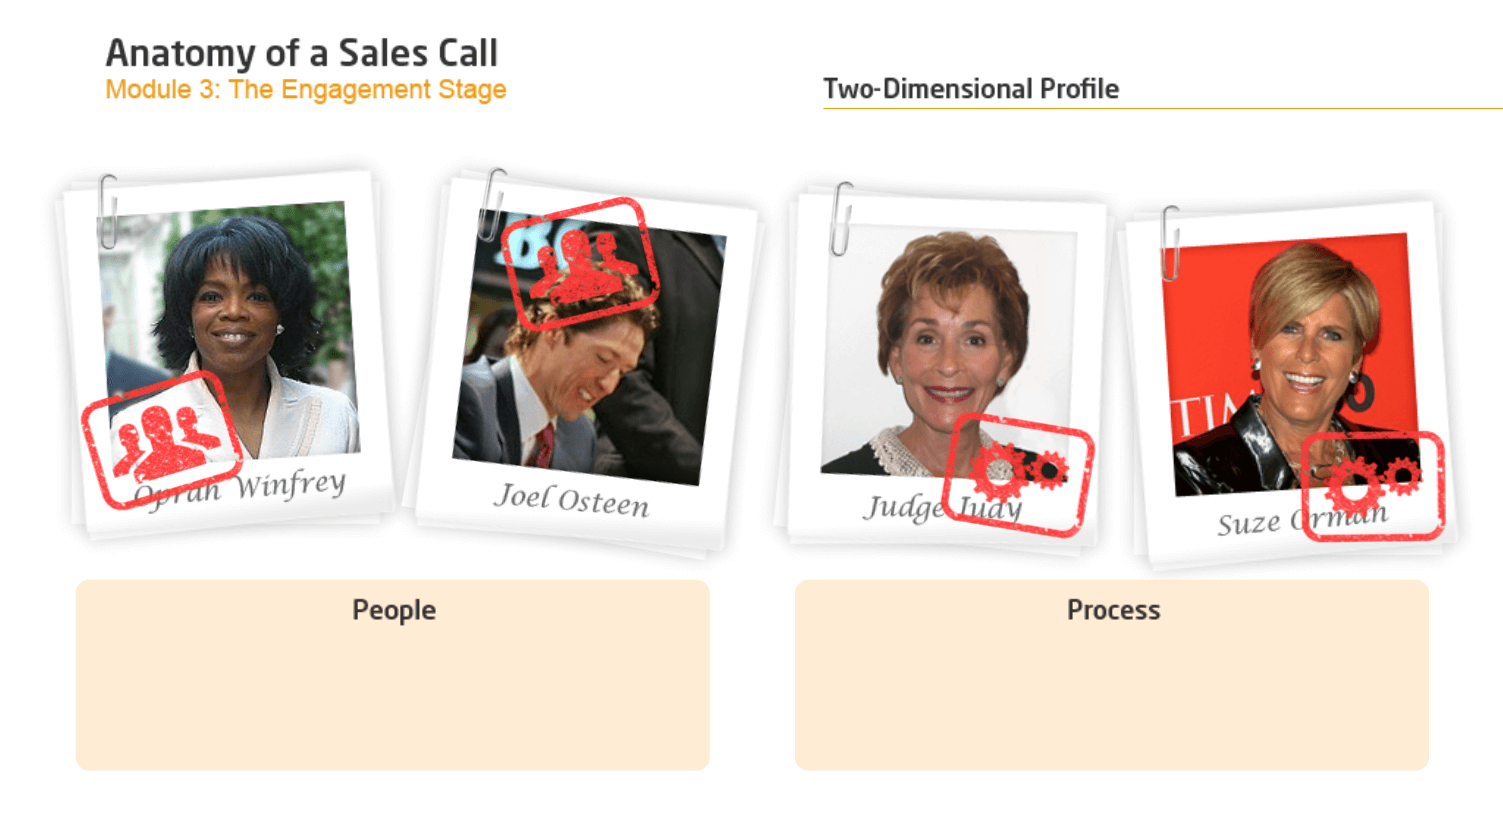 Anatomy of a Sales Call